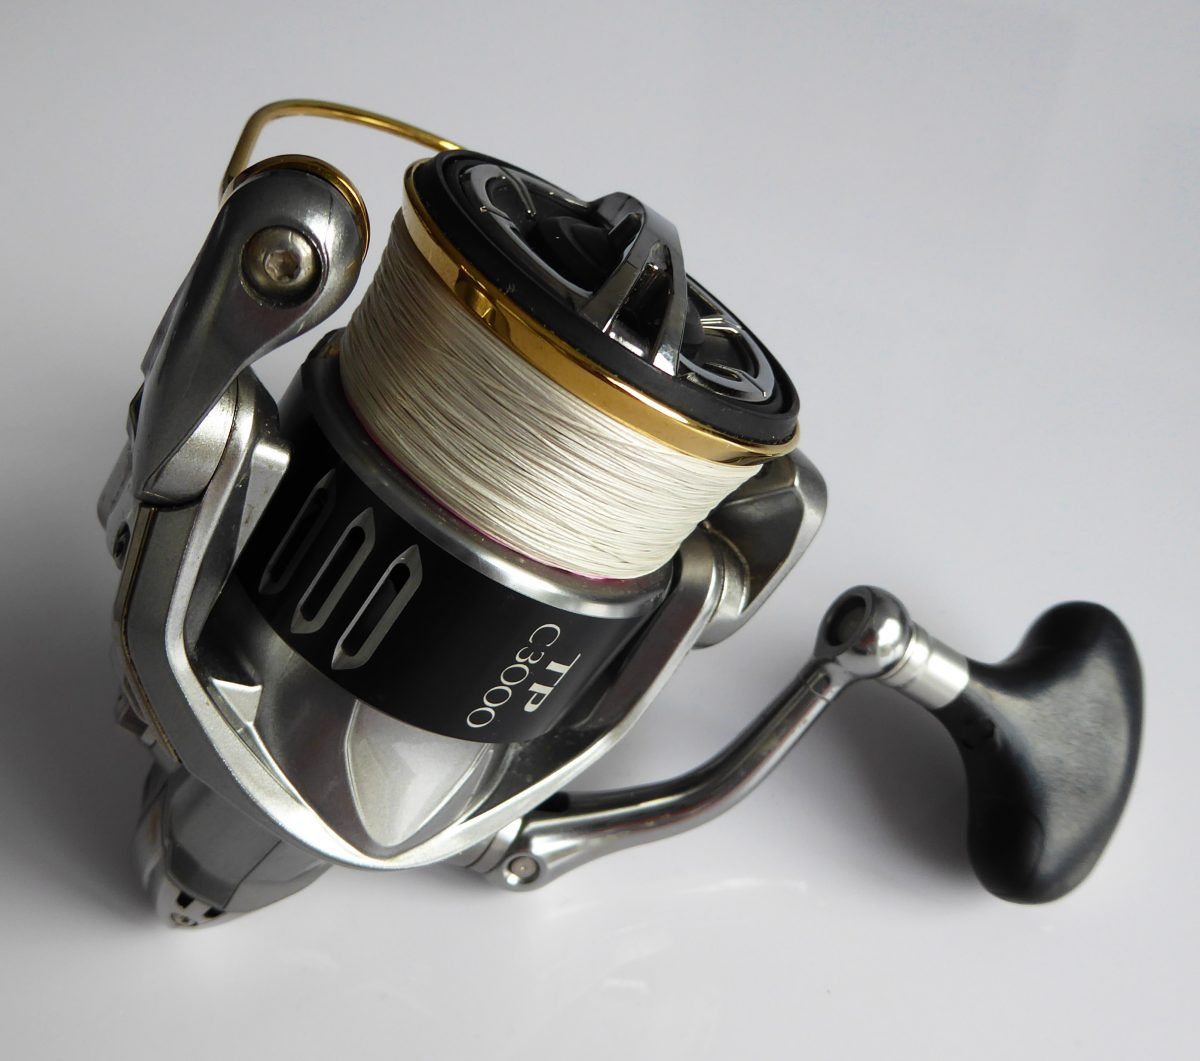 Shimano Twinpower vs Rarenium